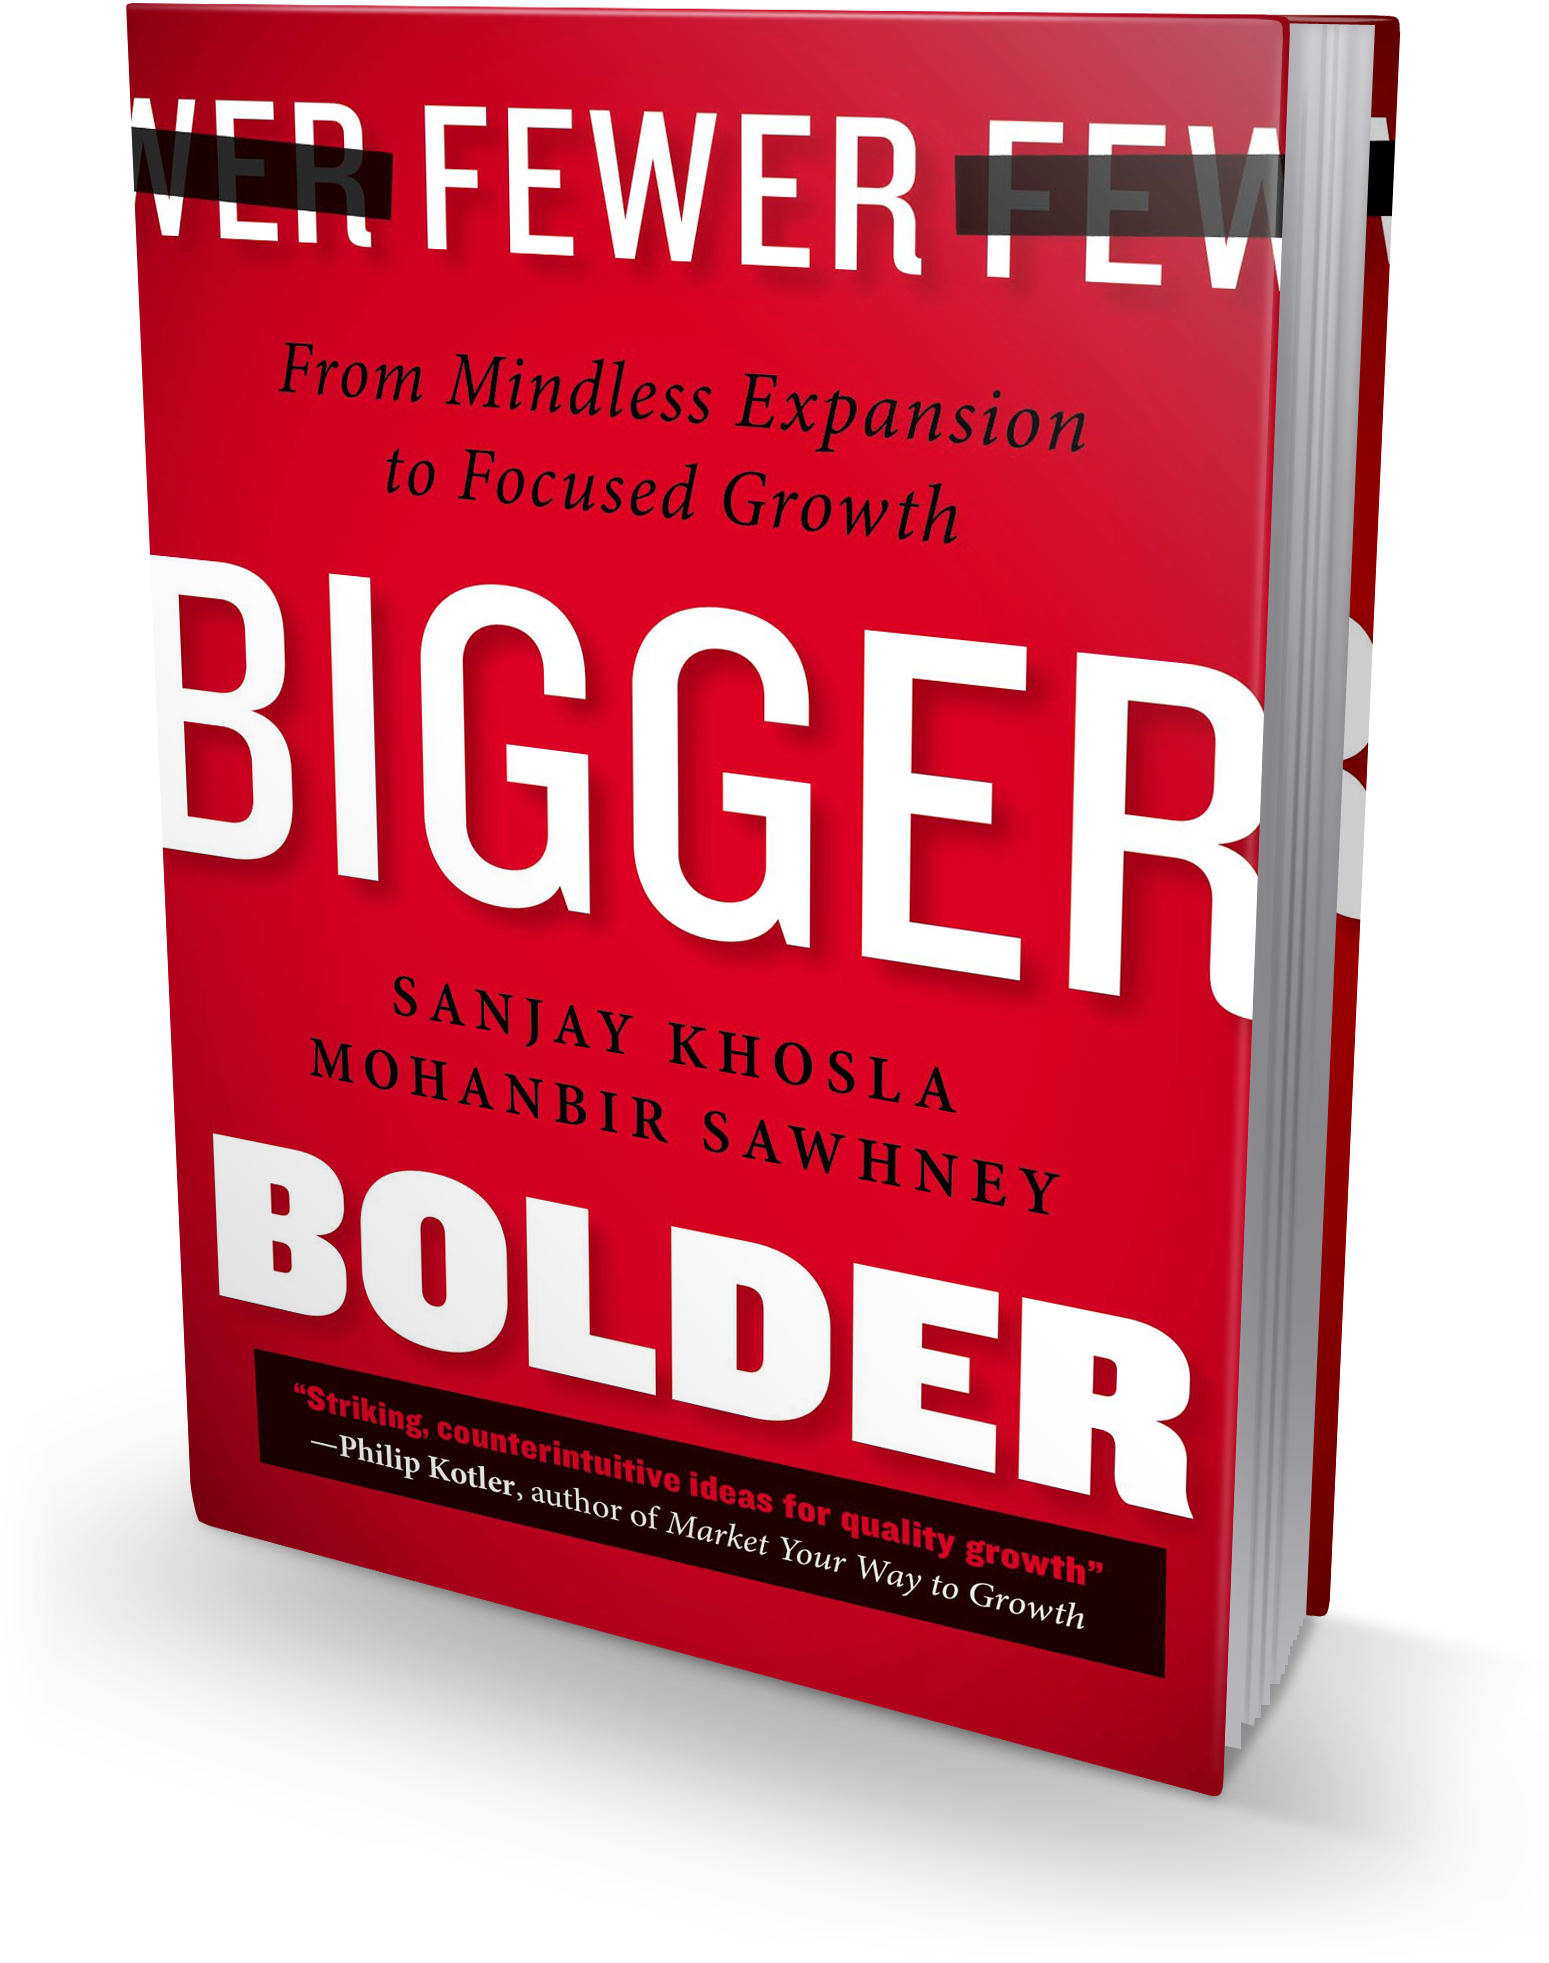 Fewer, Bigger, Bolder book cover